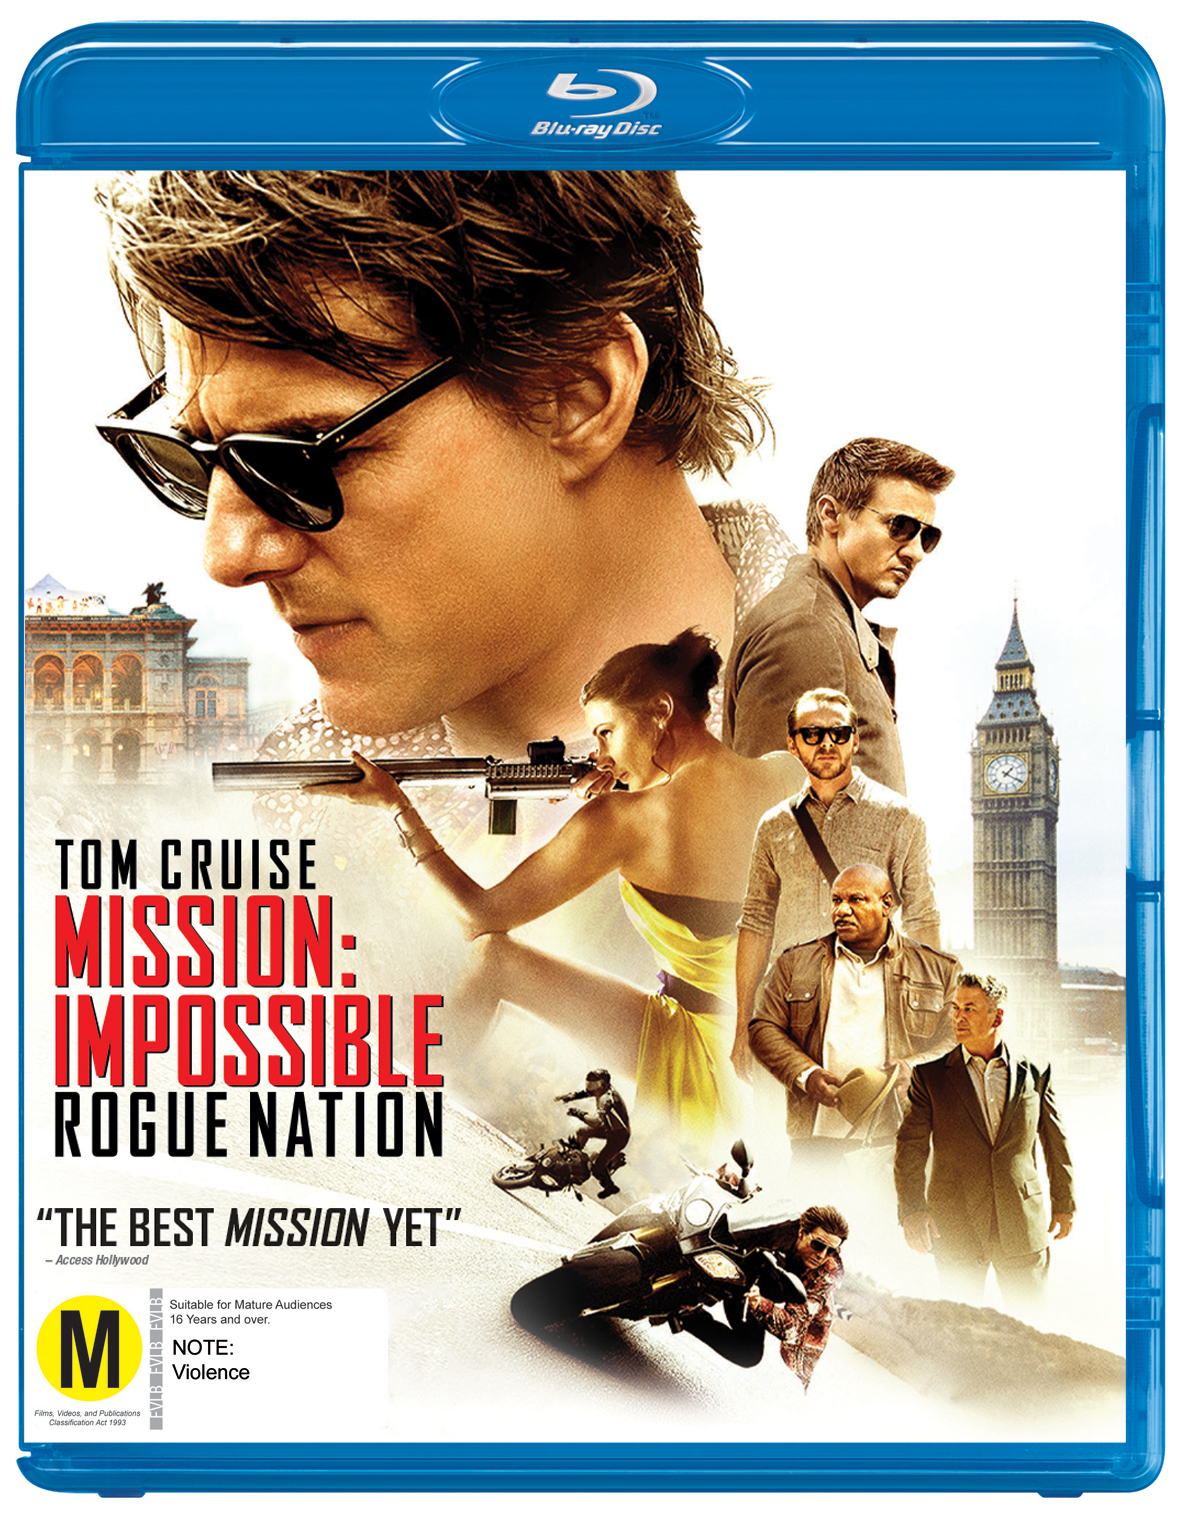 Mission Impossible 5 - Rogue Nation on Blu-ray image